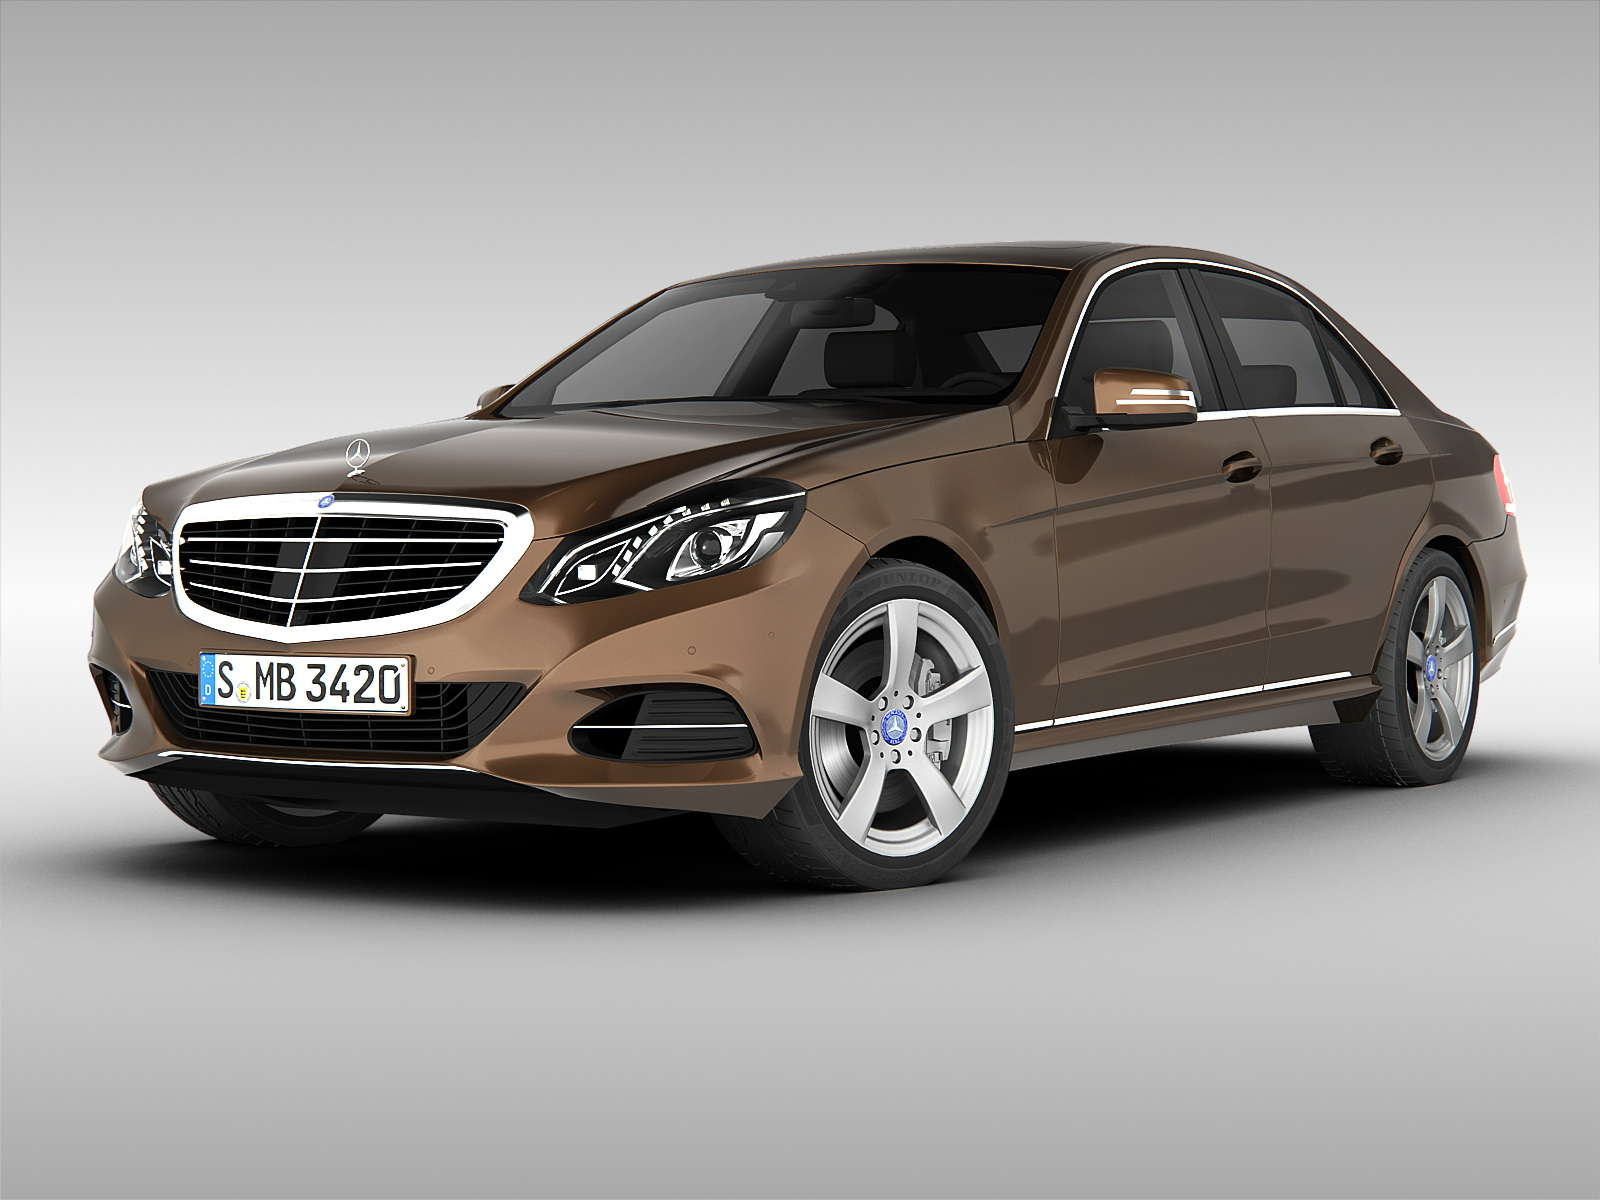 cool car wallpapers mercedes benz e class 2014. Black Bedroom Furniture Sets. Home Design Ideas